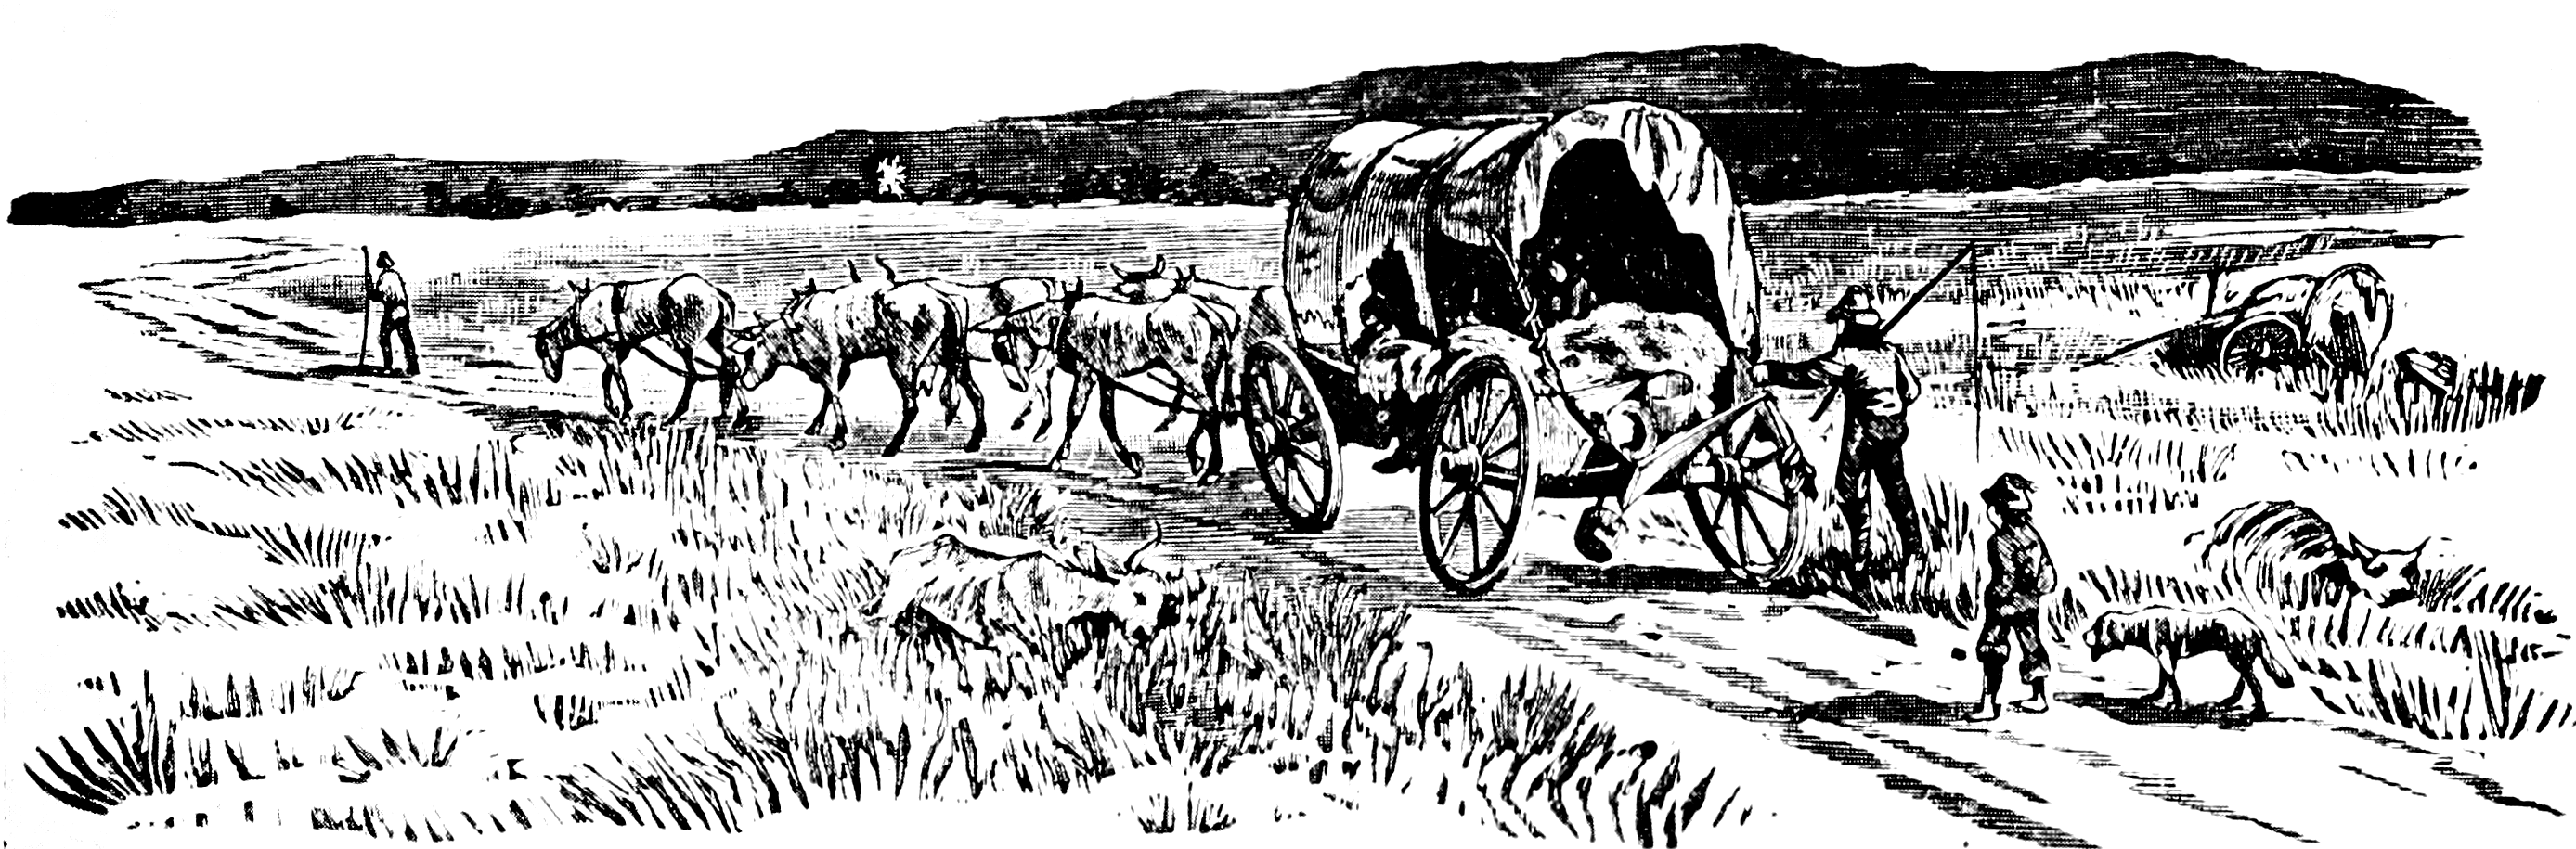 Covered Wagon on Trail sketch.png